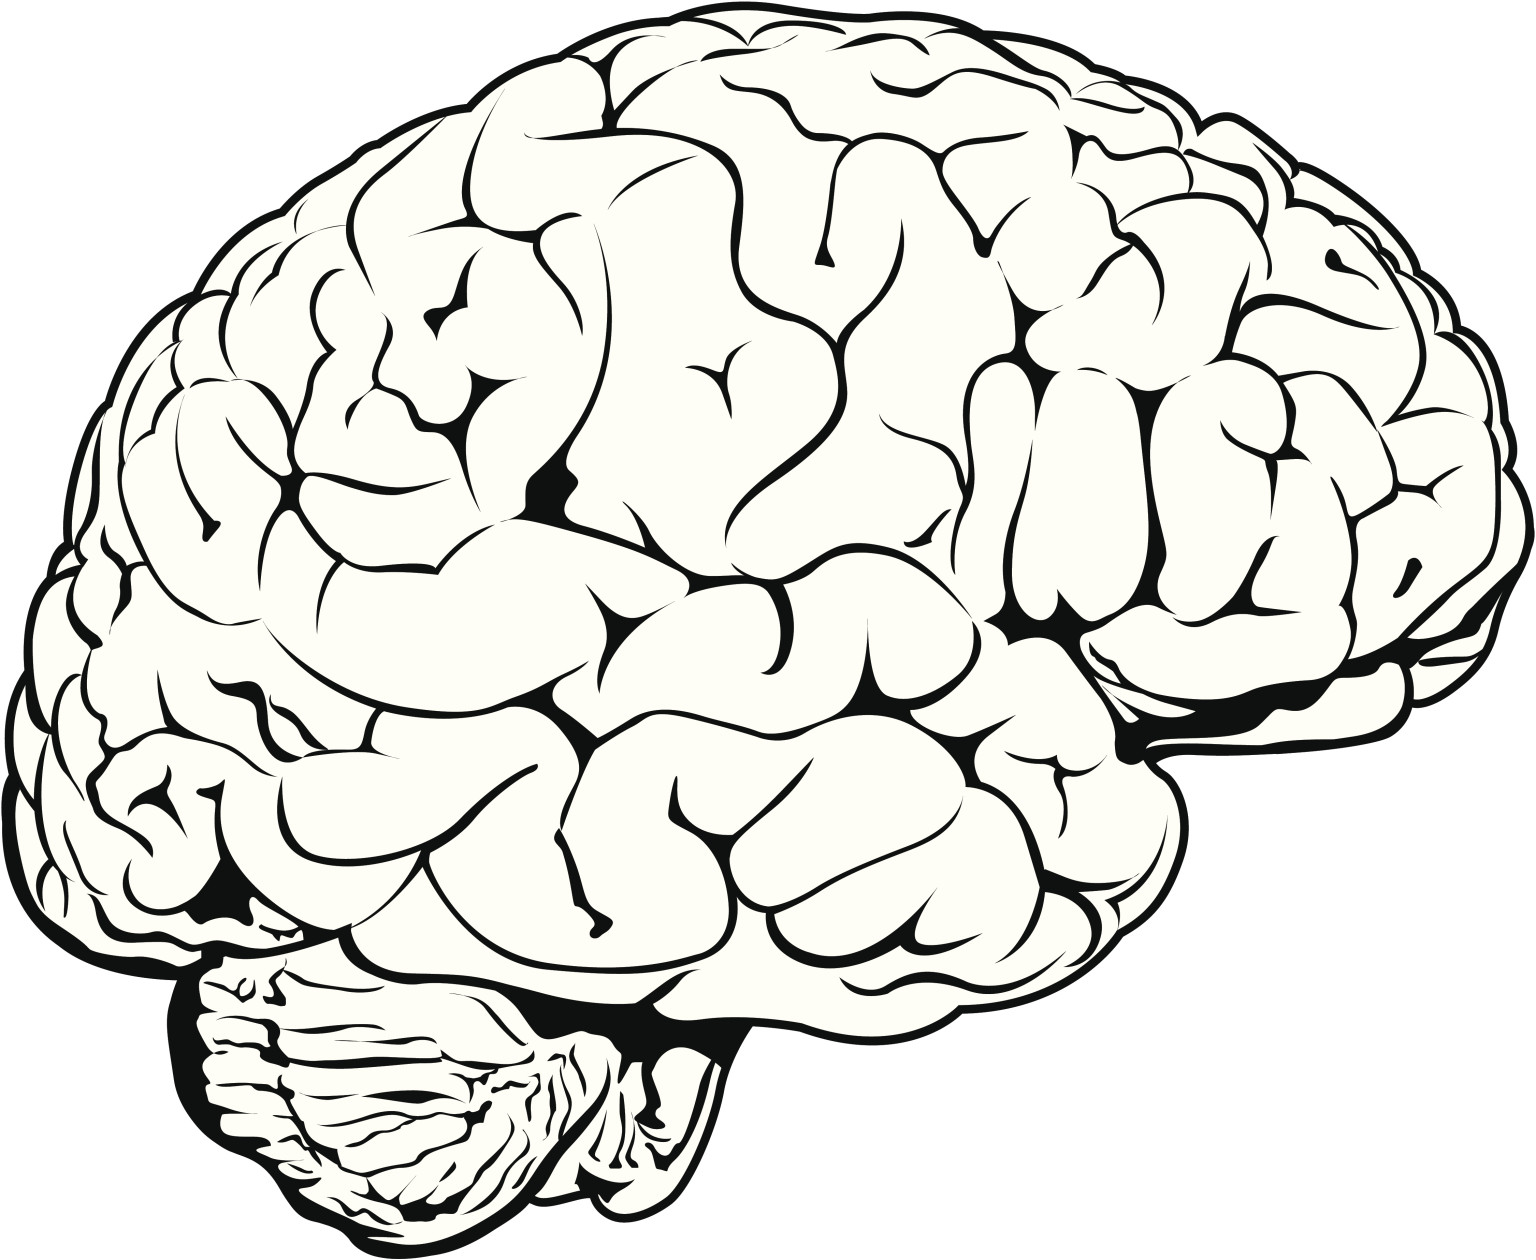 Human Brain Drawing at GetDrawingscom  Free for personal